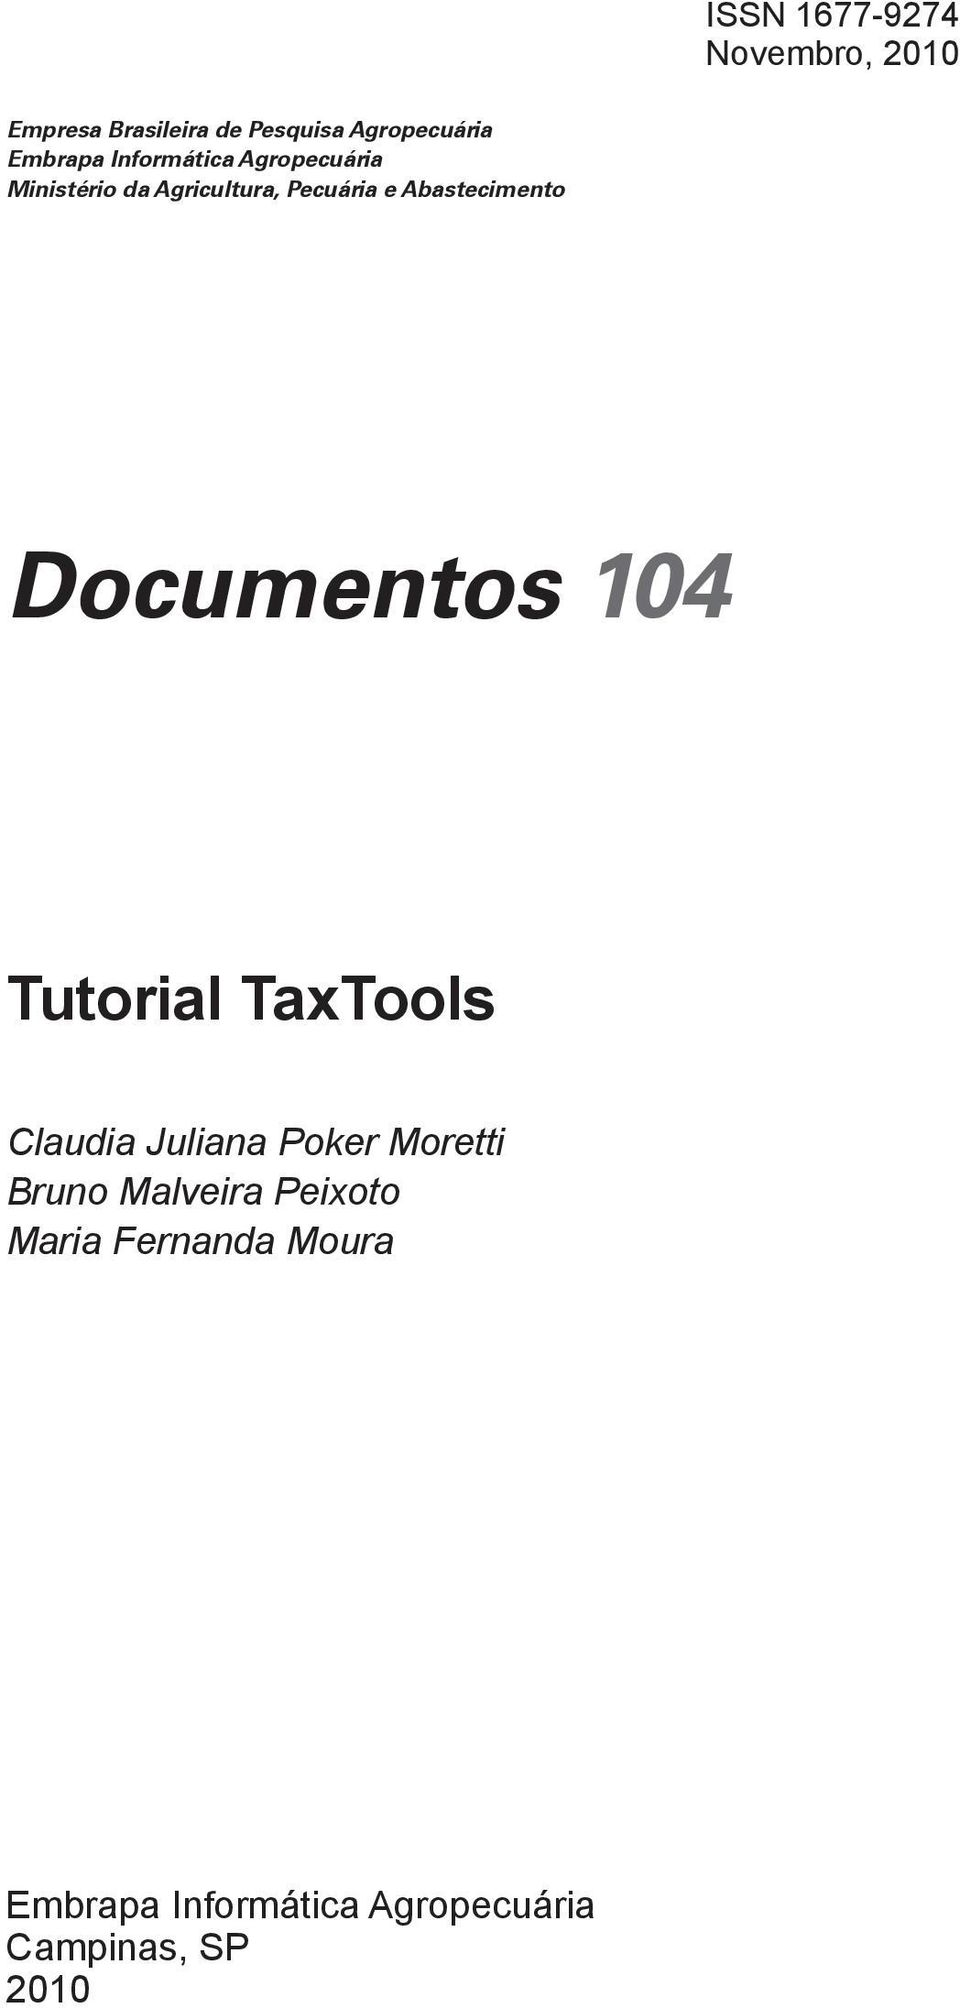 Abastecimento Documentos 104 Tutorial TaxTools Claudia Juliana Poker Moretti